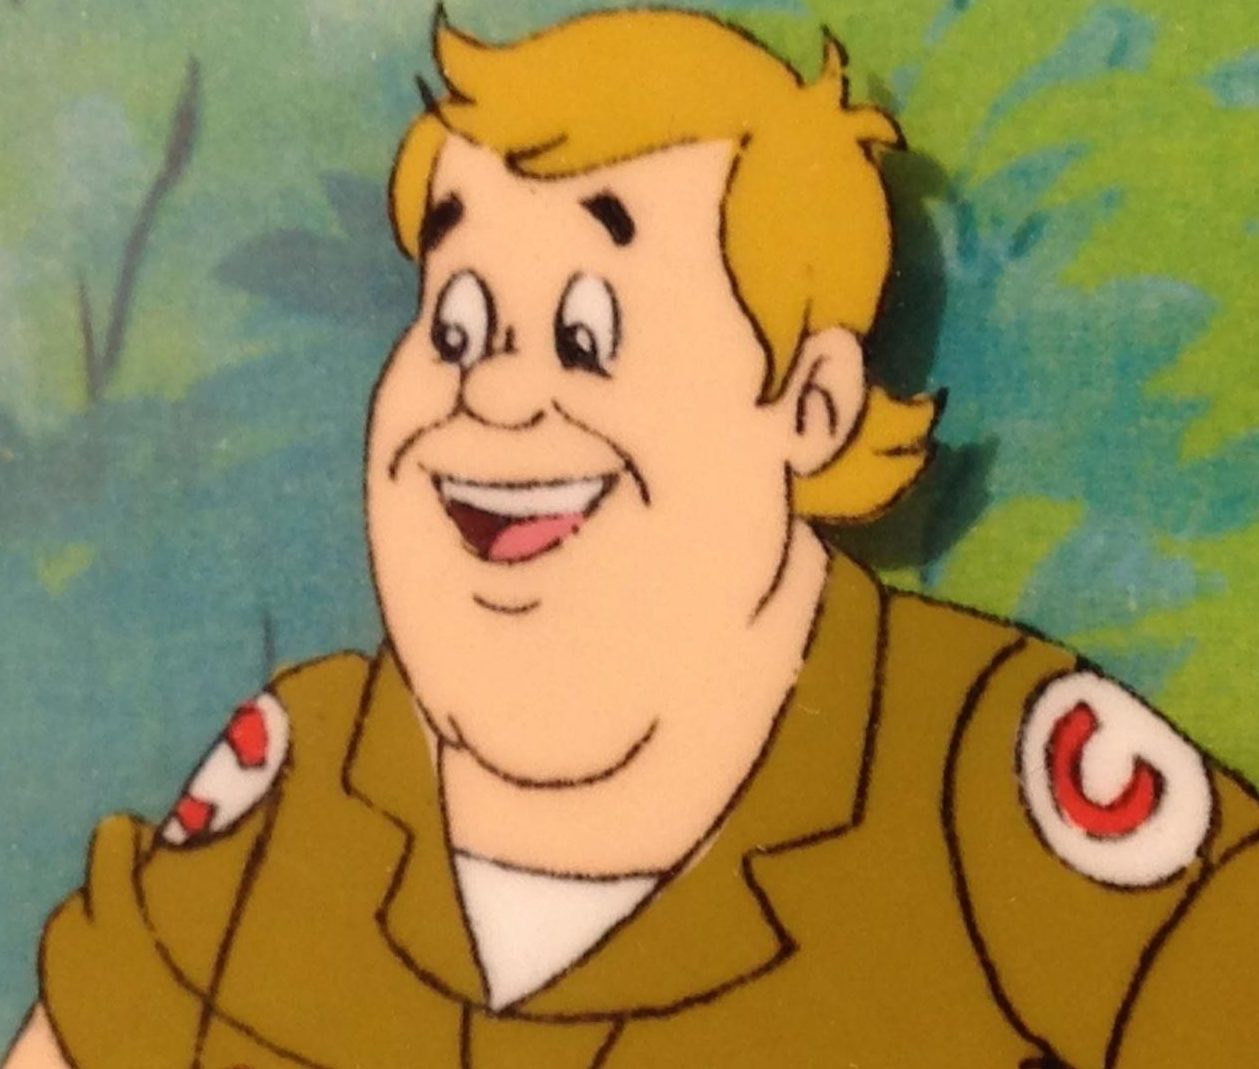 john candys camp candy original 1 750b920a22780337f0eabf416aef84d2 e1611572983149 40 Things You Probably Didn't Know About John Candy